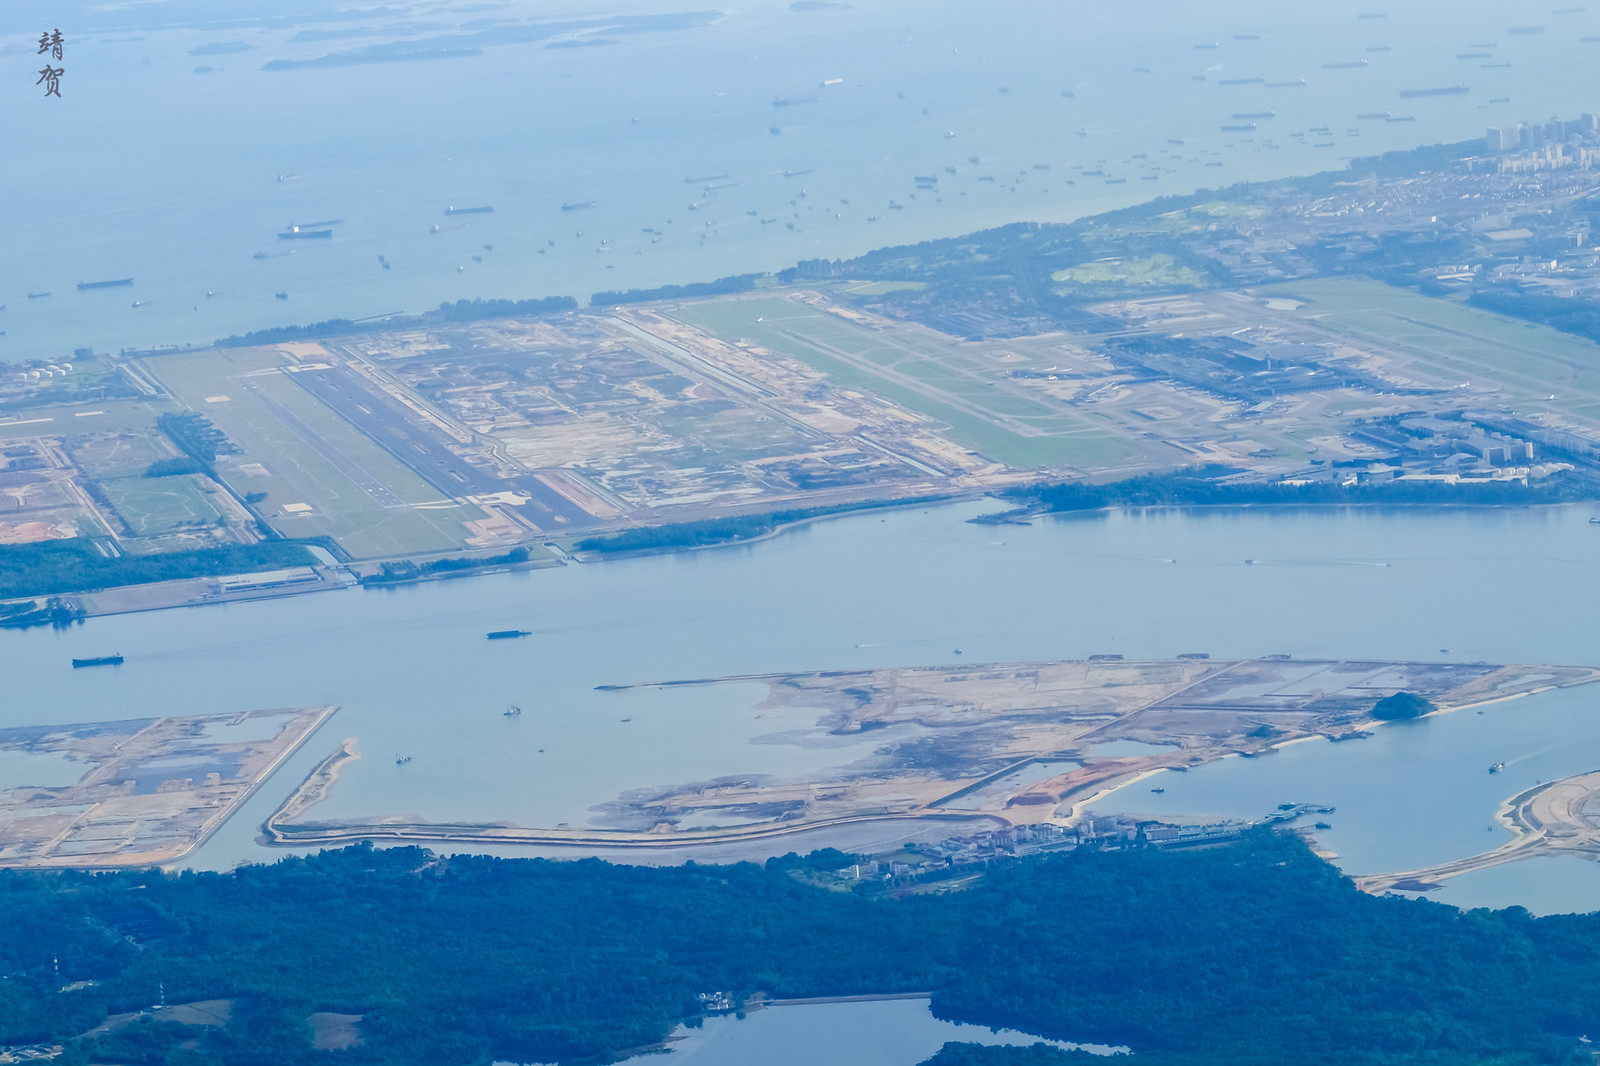 Aerial view of Changi Airport